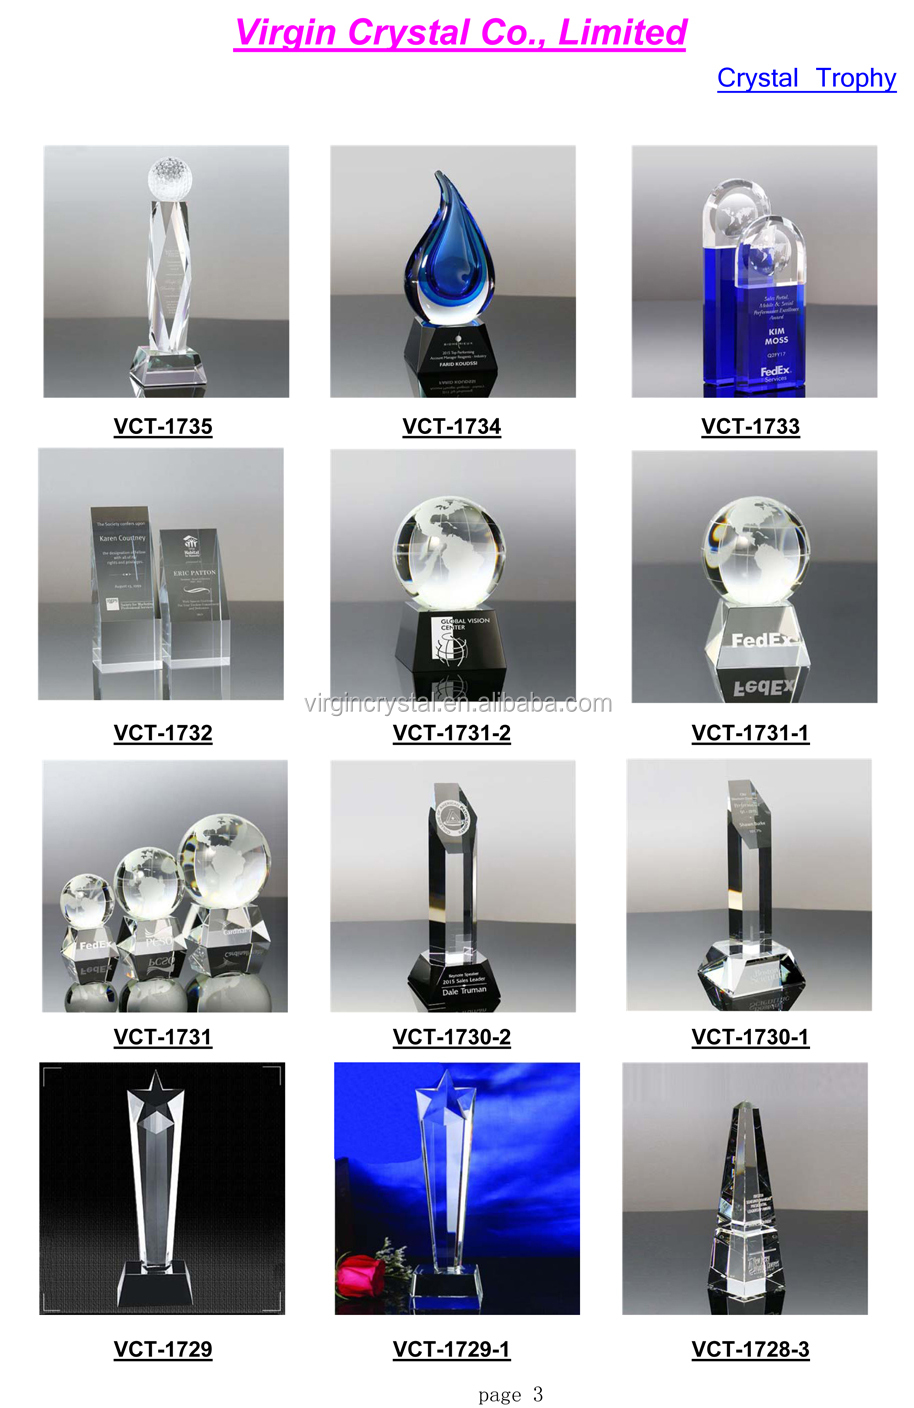 High quality K9 crystal trophy with engraving company logo as office gifts